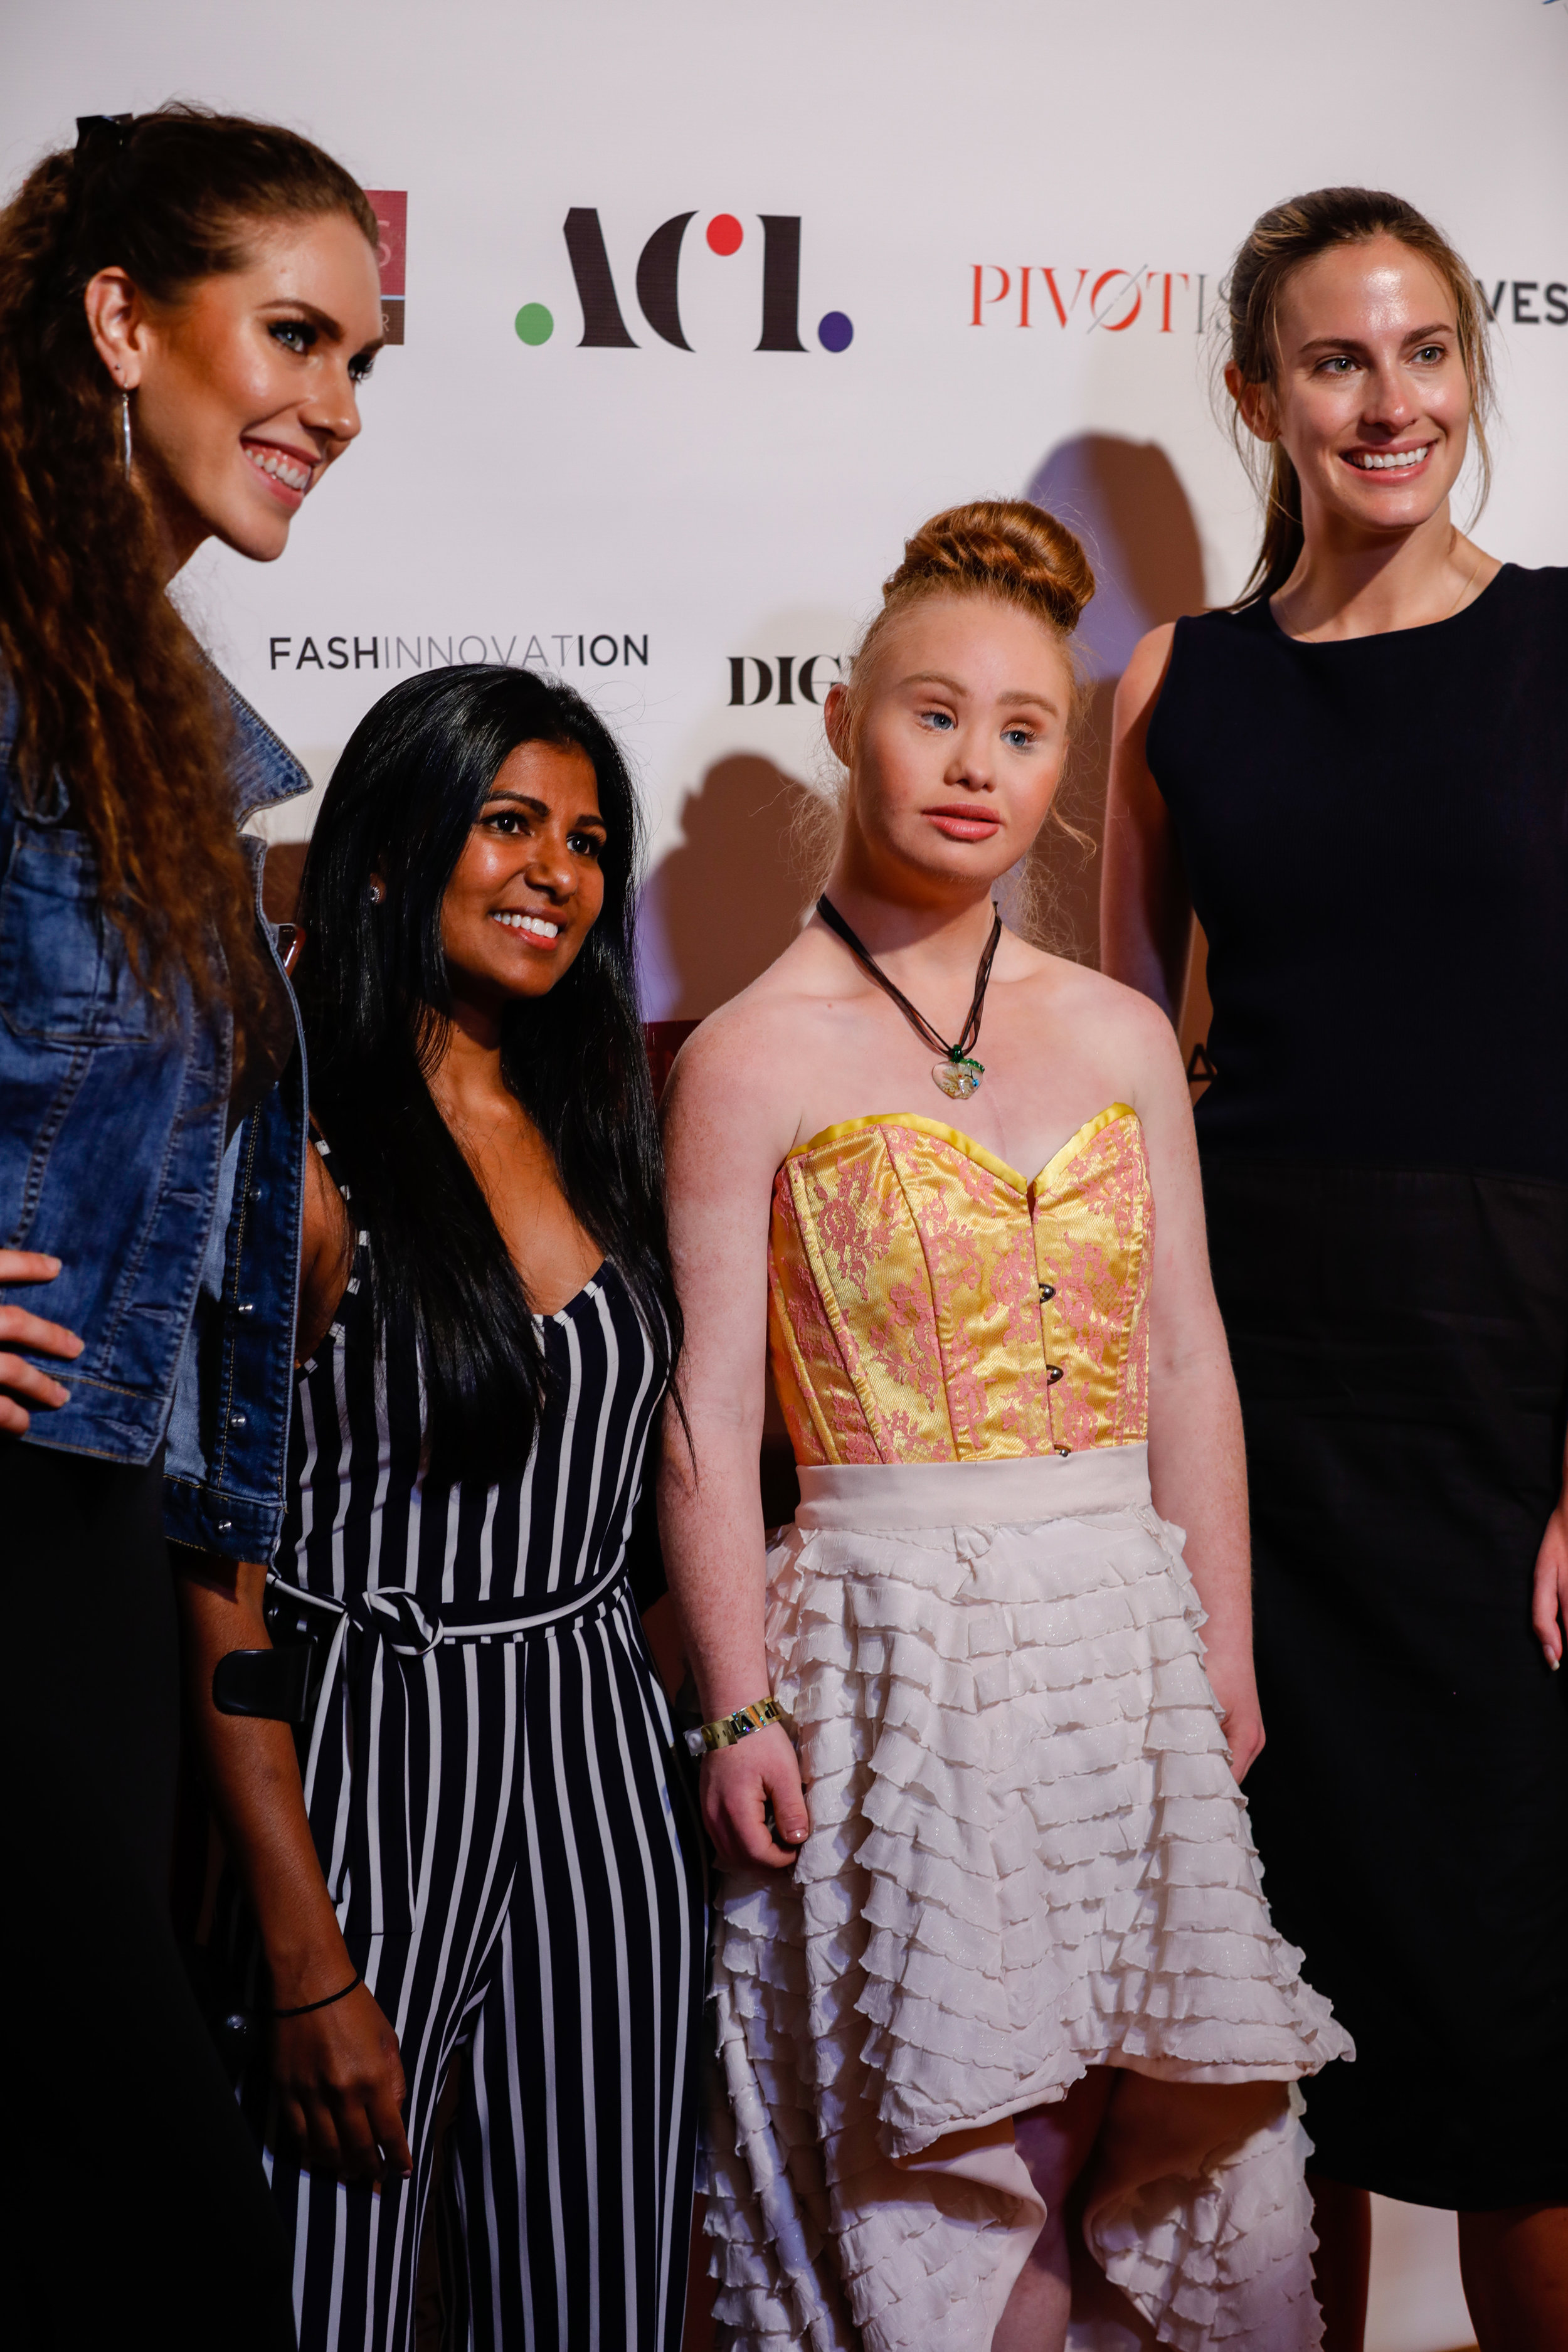 Rajee Aerie - Aerie disability campaign model, Madeline Stuart - Australian model with down syndrome, Christina Mallon - director of Open Style Lab.jpg